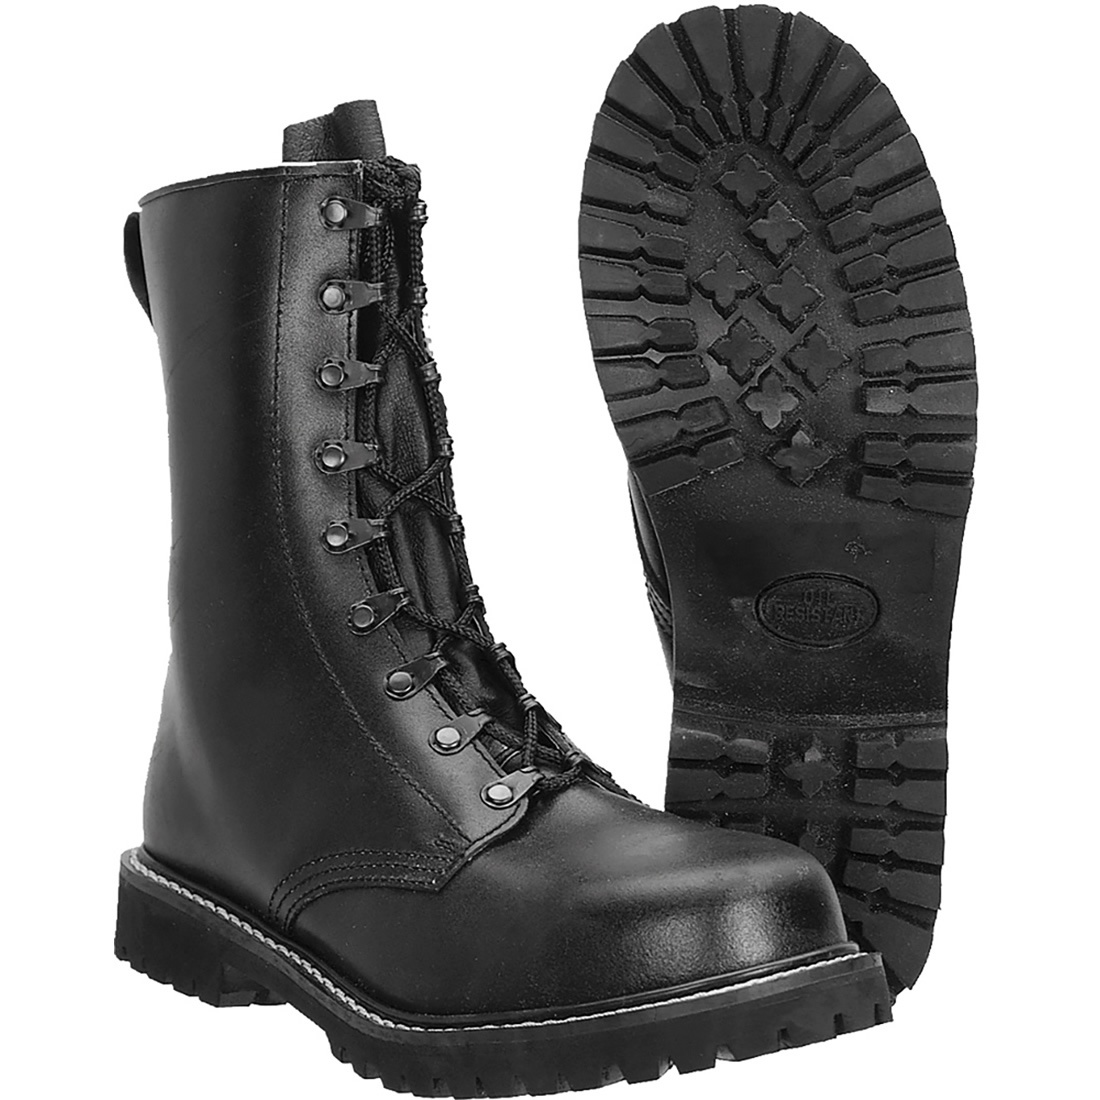 Mil-Tec Para Leather Boots With Toe Cap